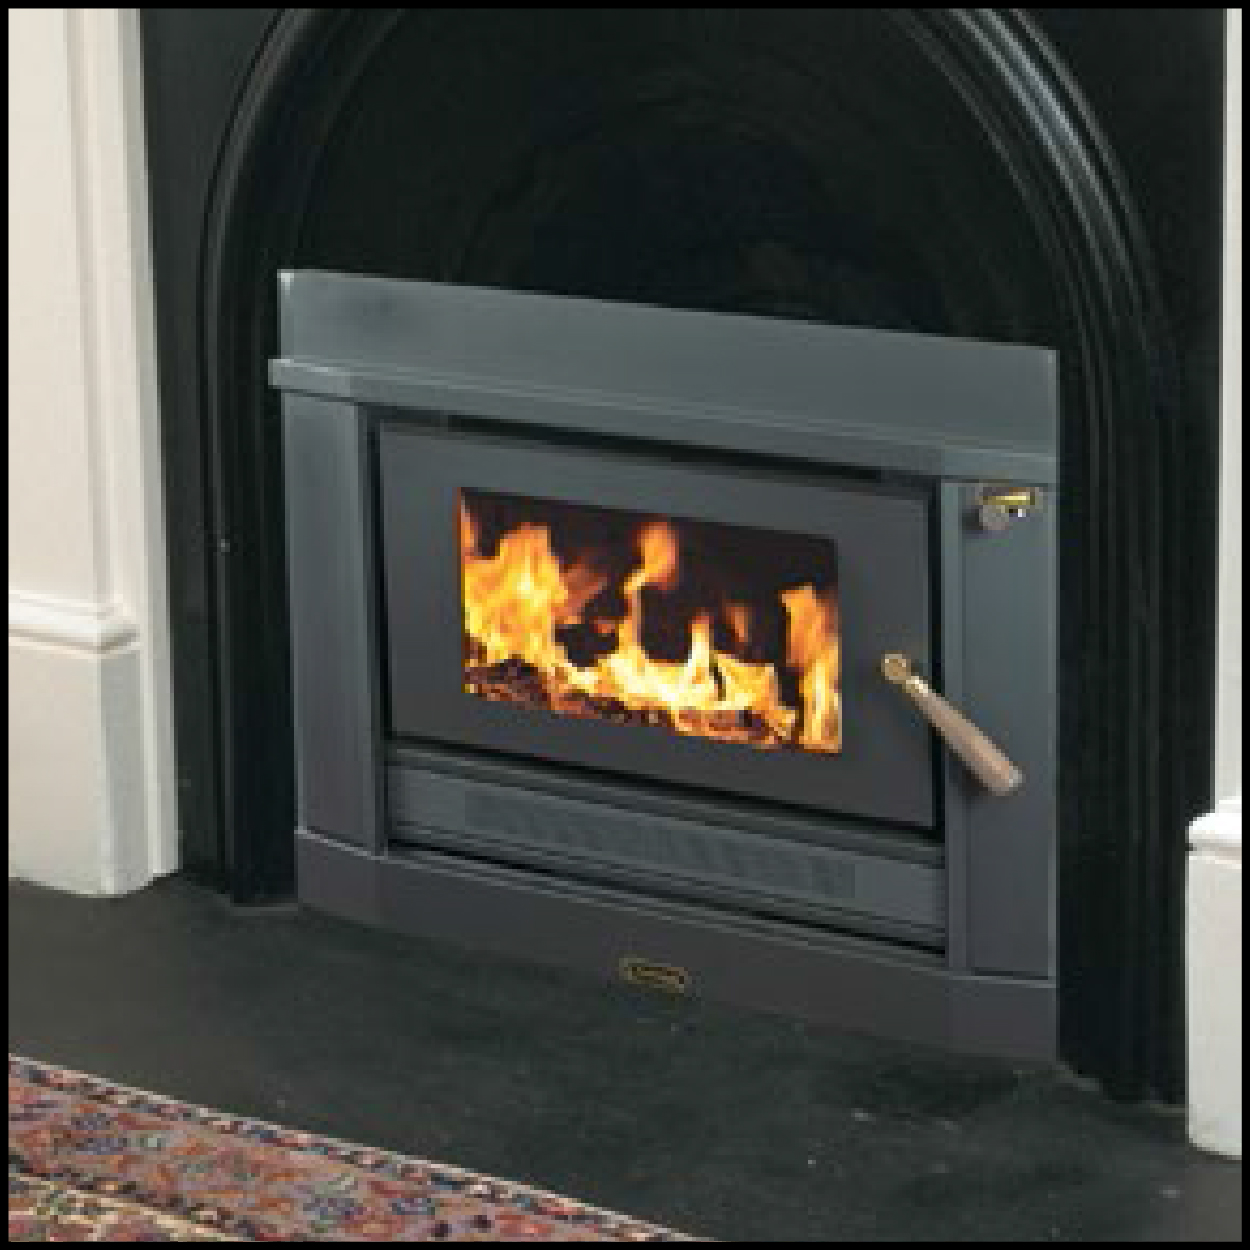 Coonara fireplace how to use